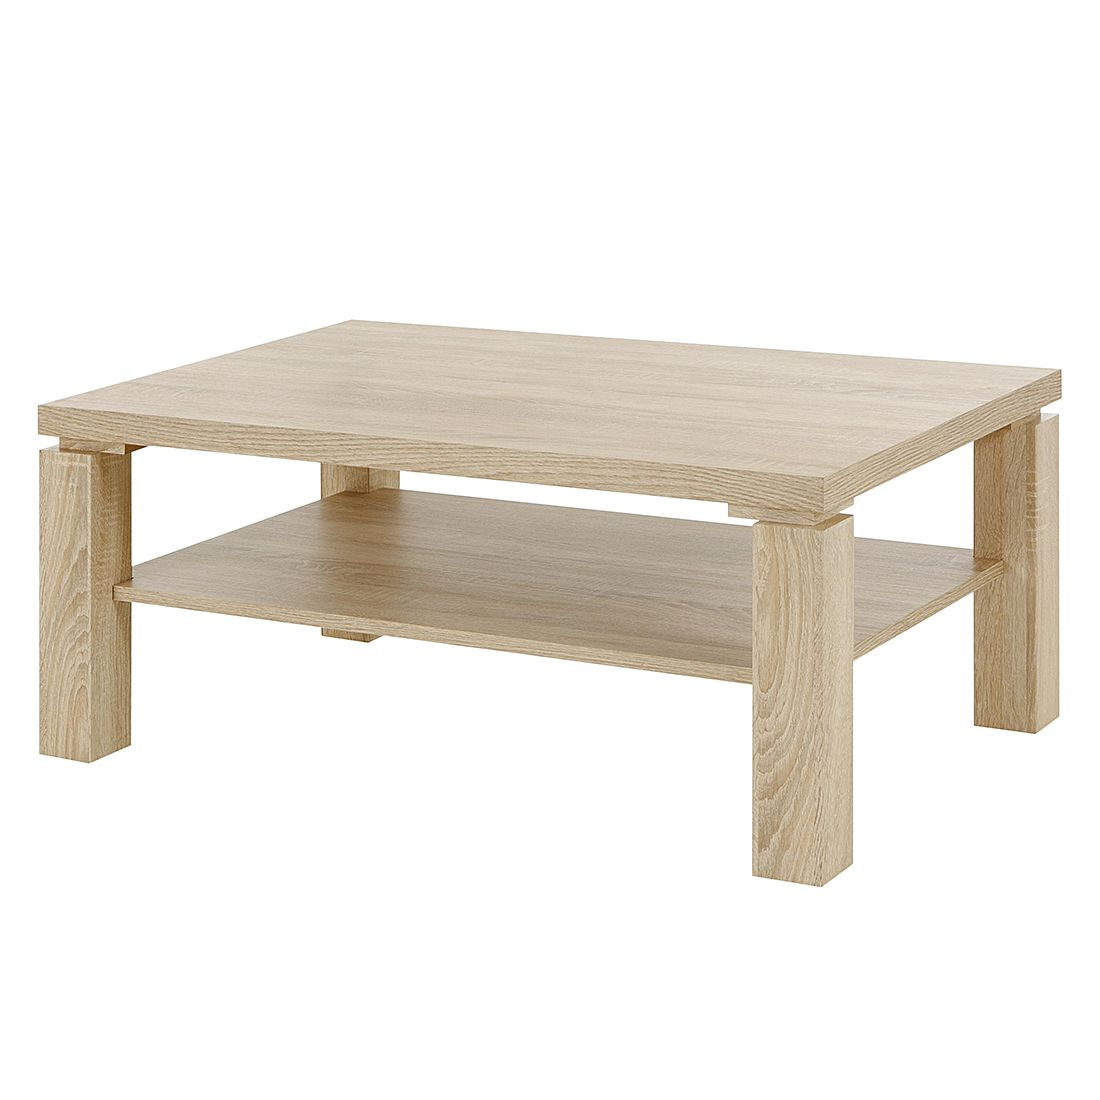 Table basse Ethan - Imitation chêne de Sonoma, Home Design